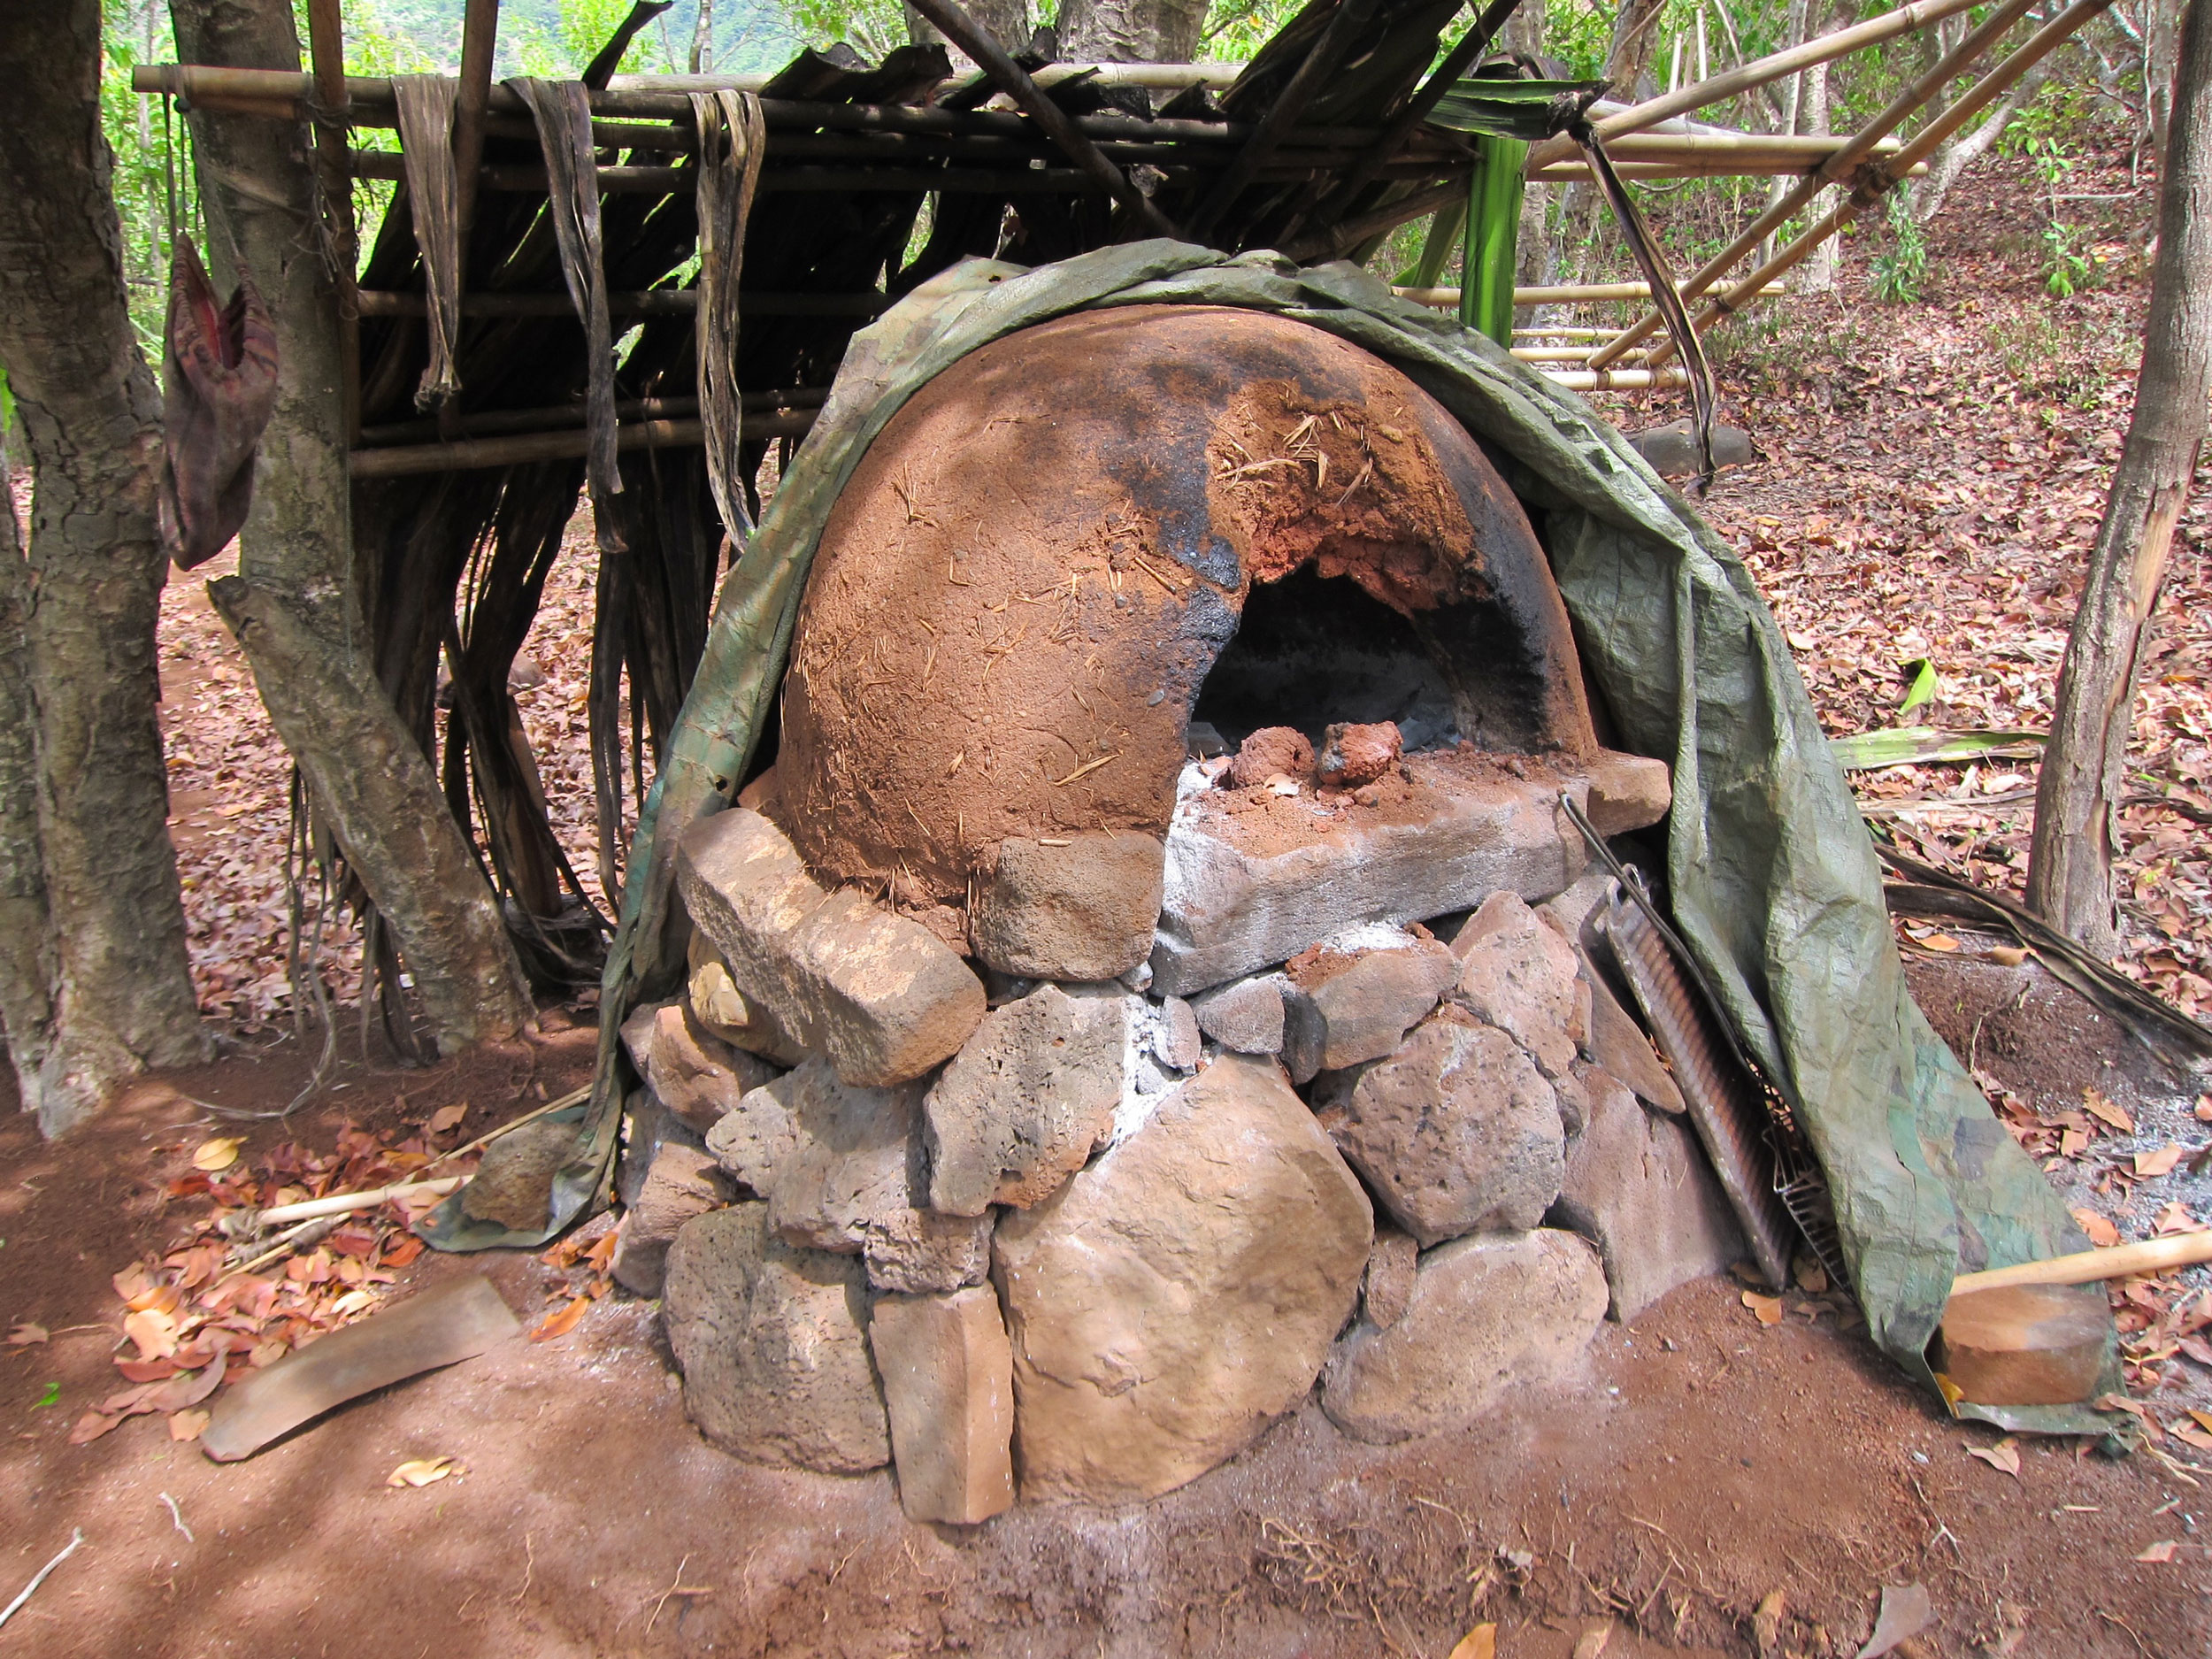 70064258013c a pizza oven built by squatters in the Kalalau Valley